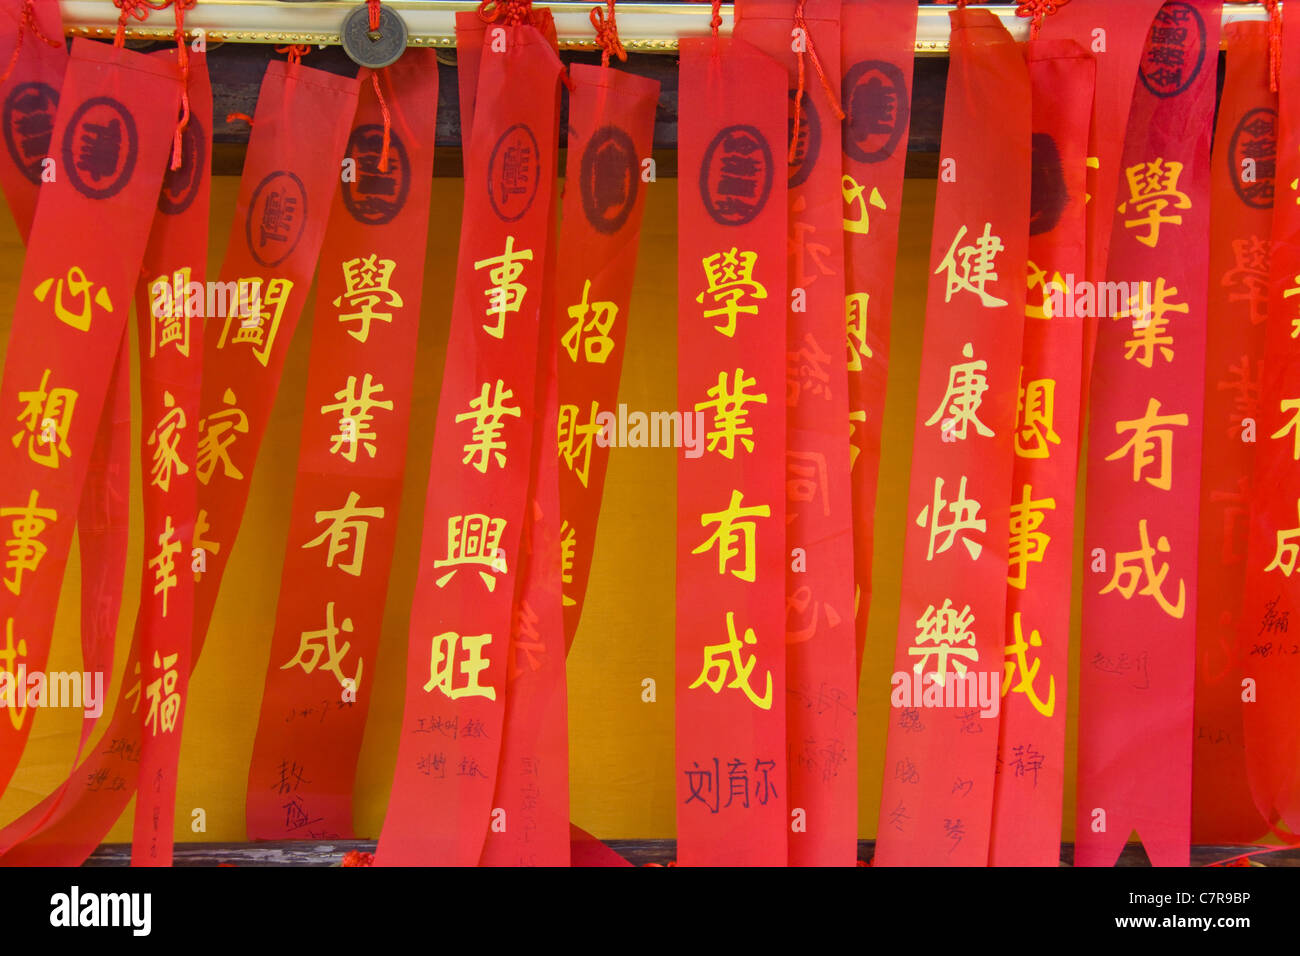 Red ribbons with good wishes on the tree, Confucius Temple, Nanjing, Jiangsu, China - Stock Image